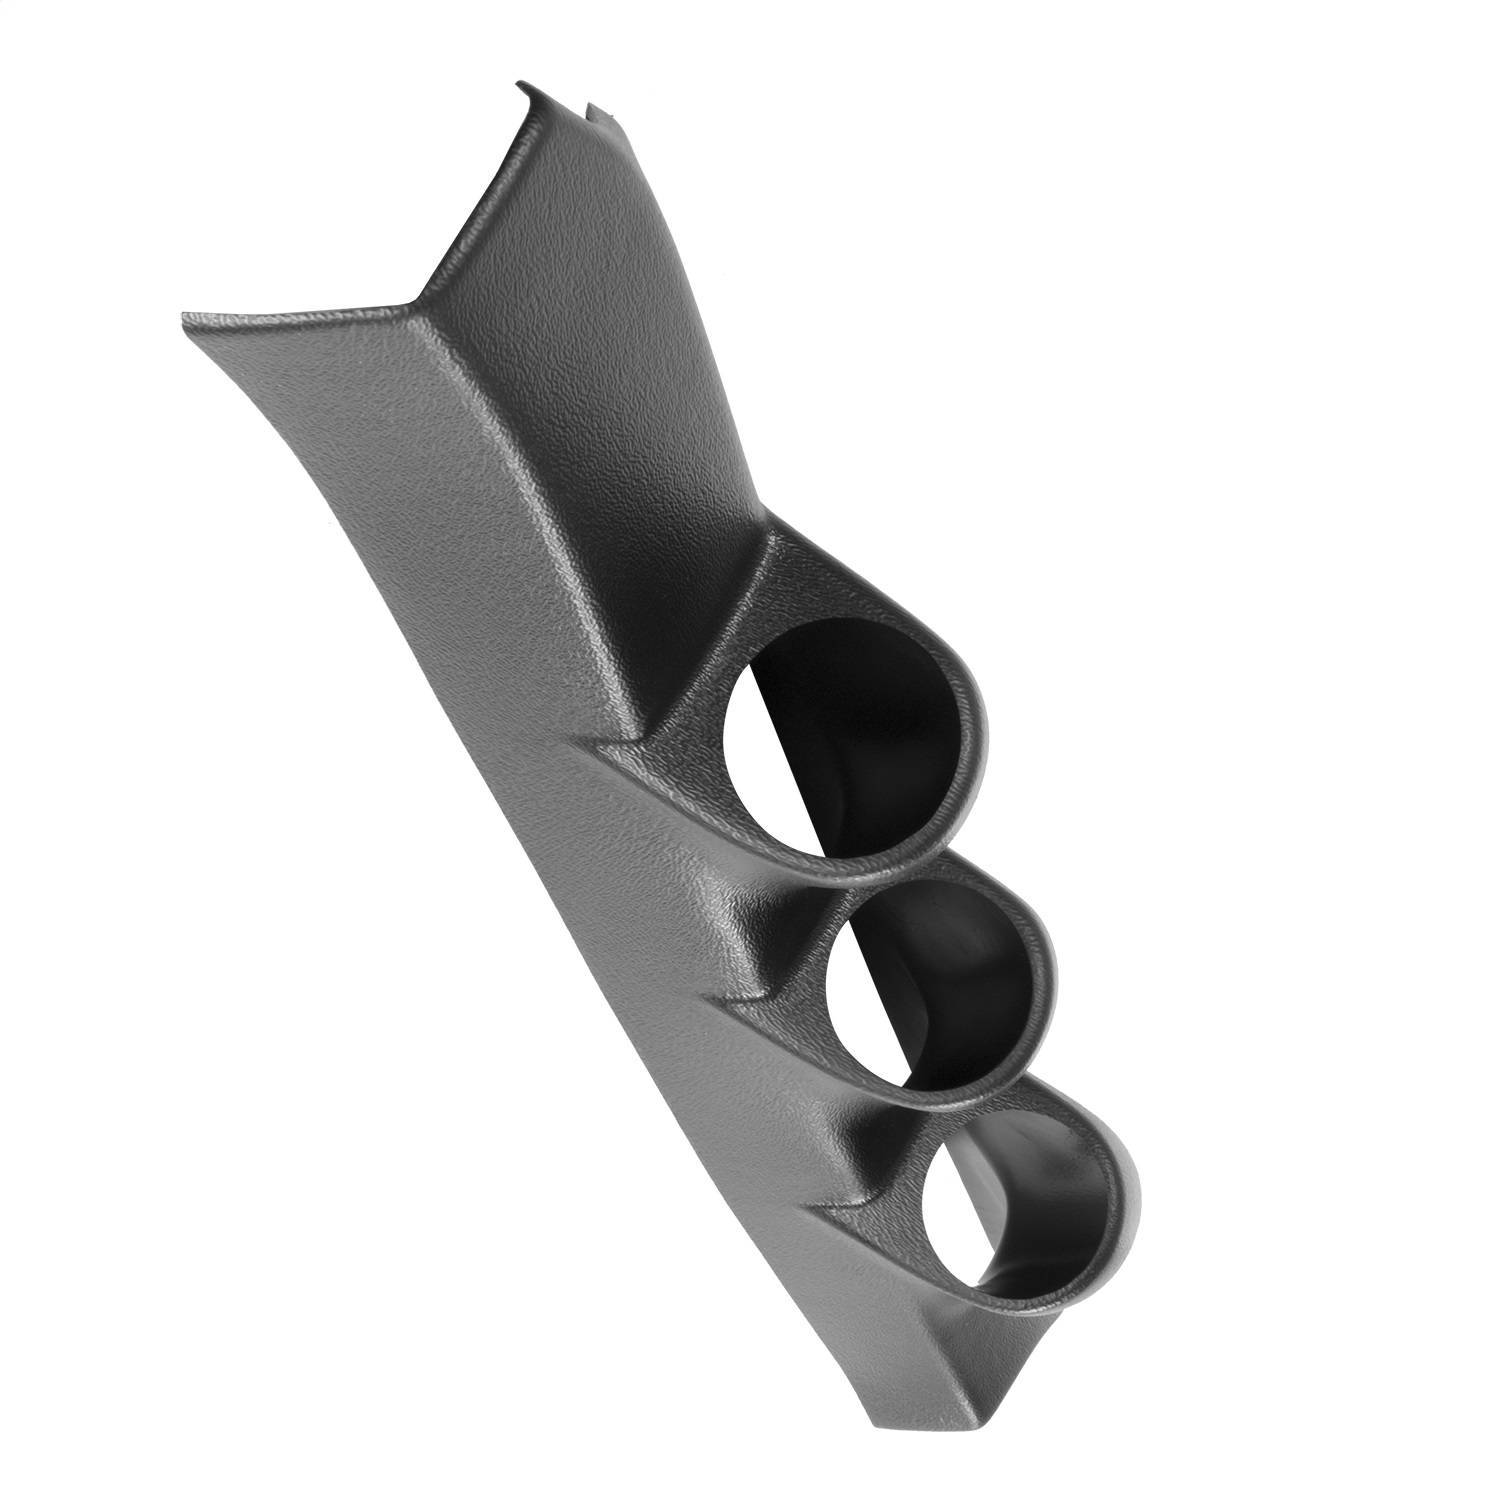 AutoMeter 12201 Mounting Solutions Triple Gauge A-Pillar Mount